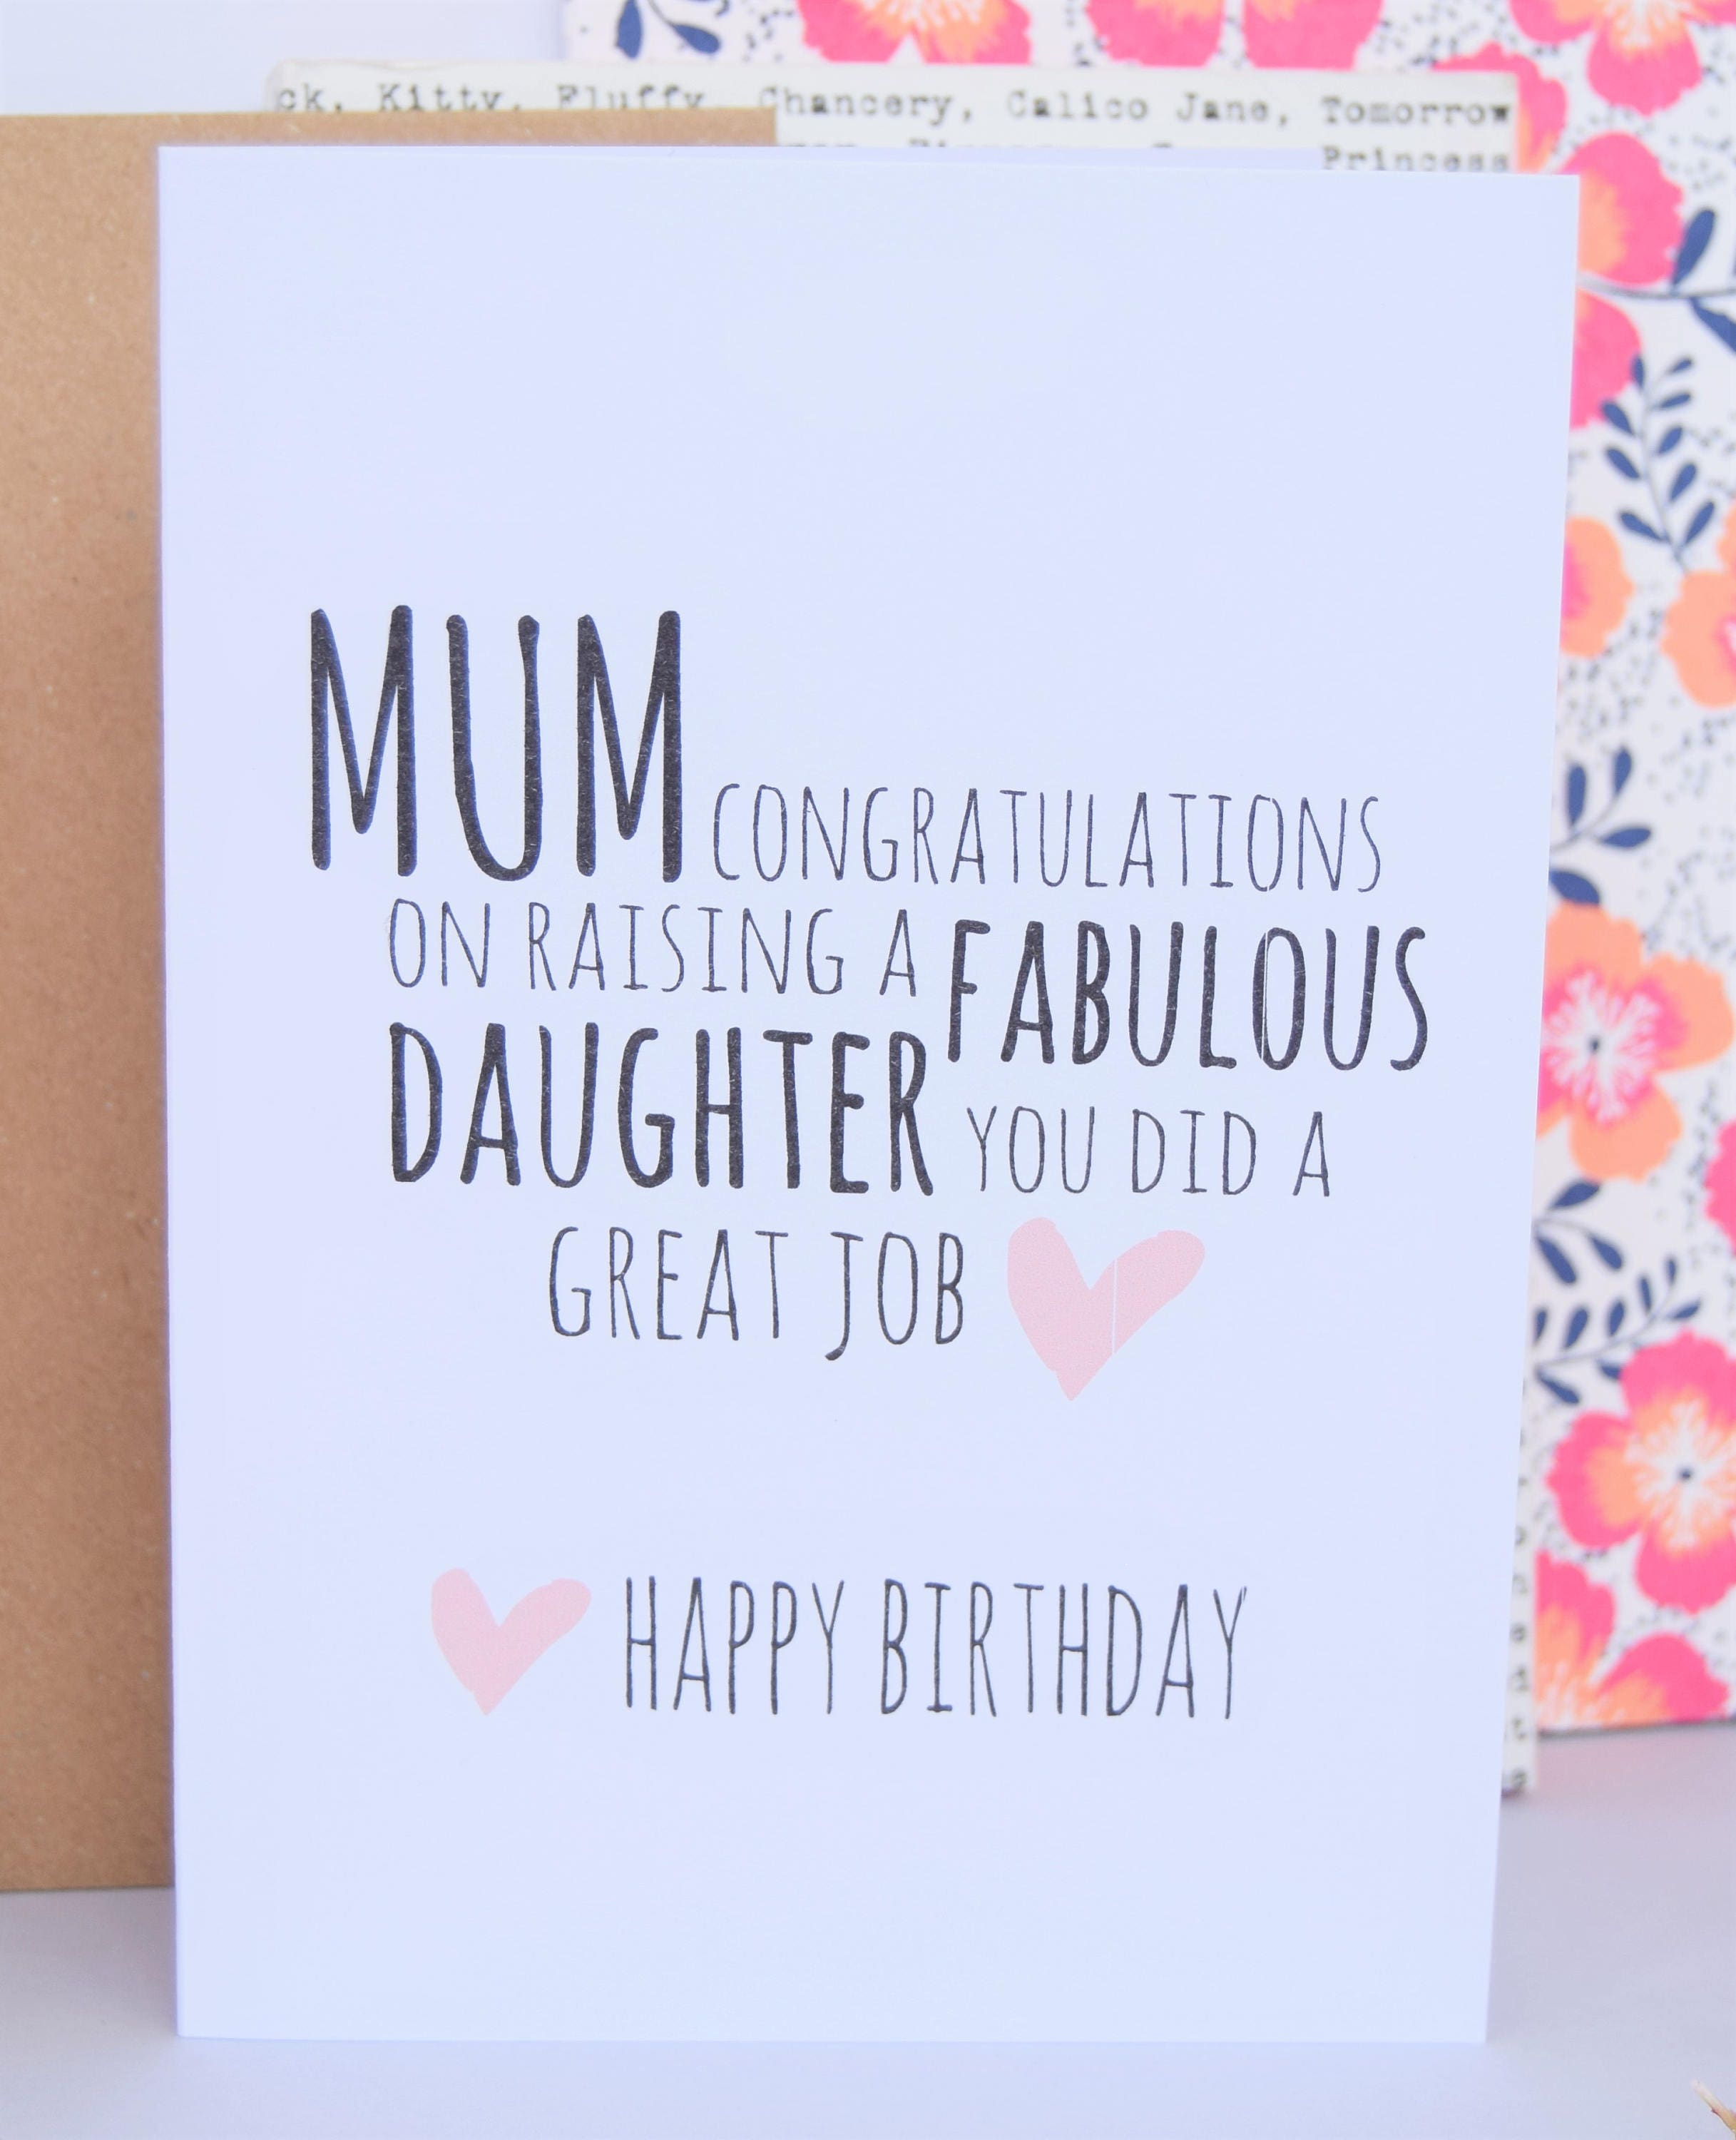 Mum birthday card fabulous daughter mom card mom birthday card mum birthday card fabulous daughter mom card mom birthday card card for bookmarktalkfo Images